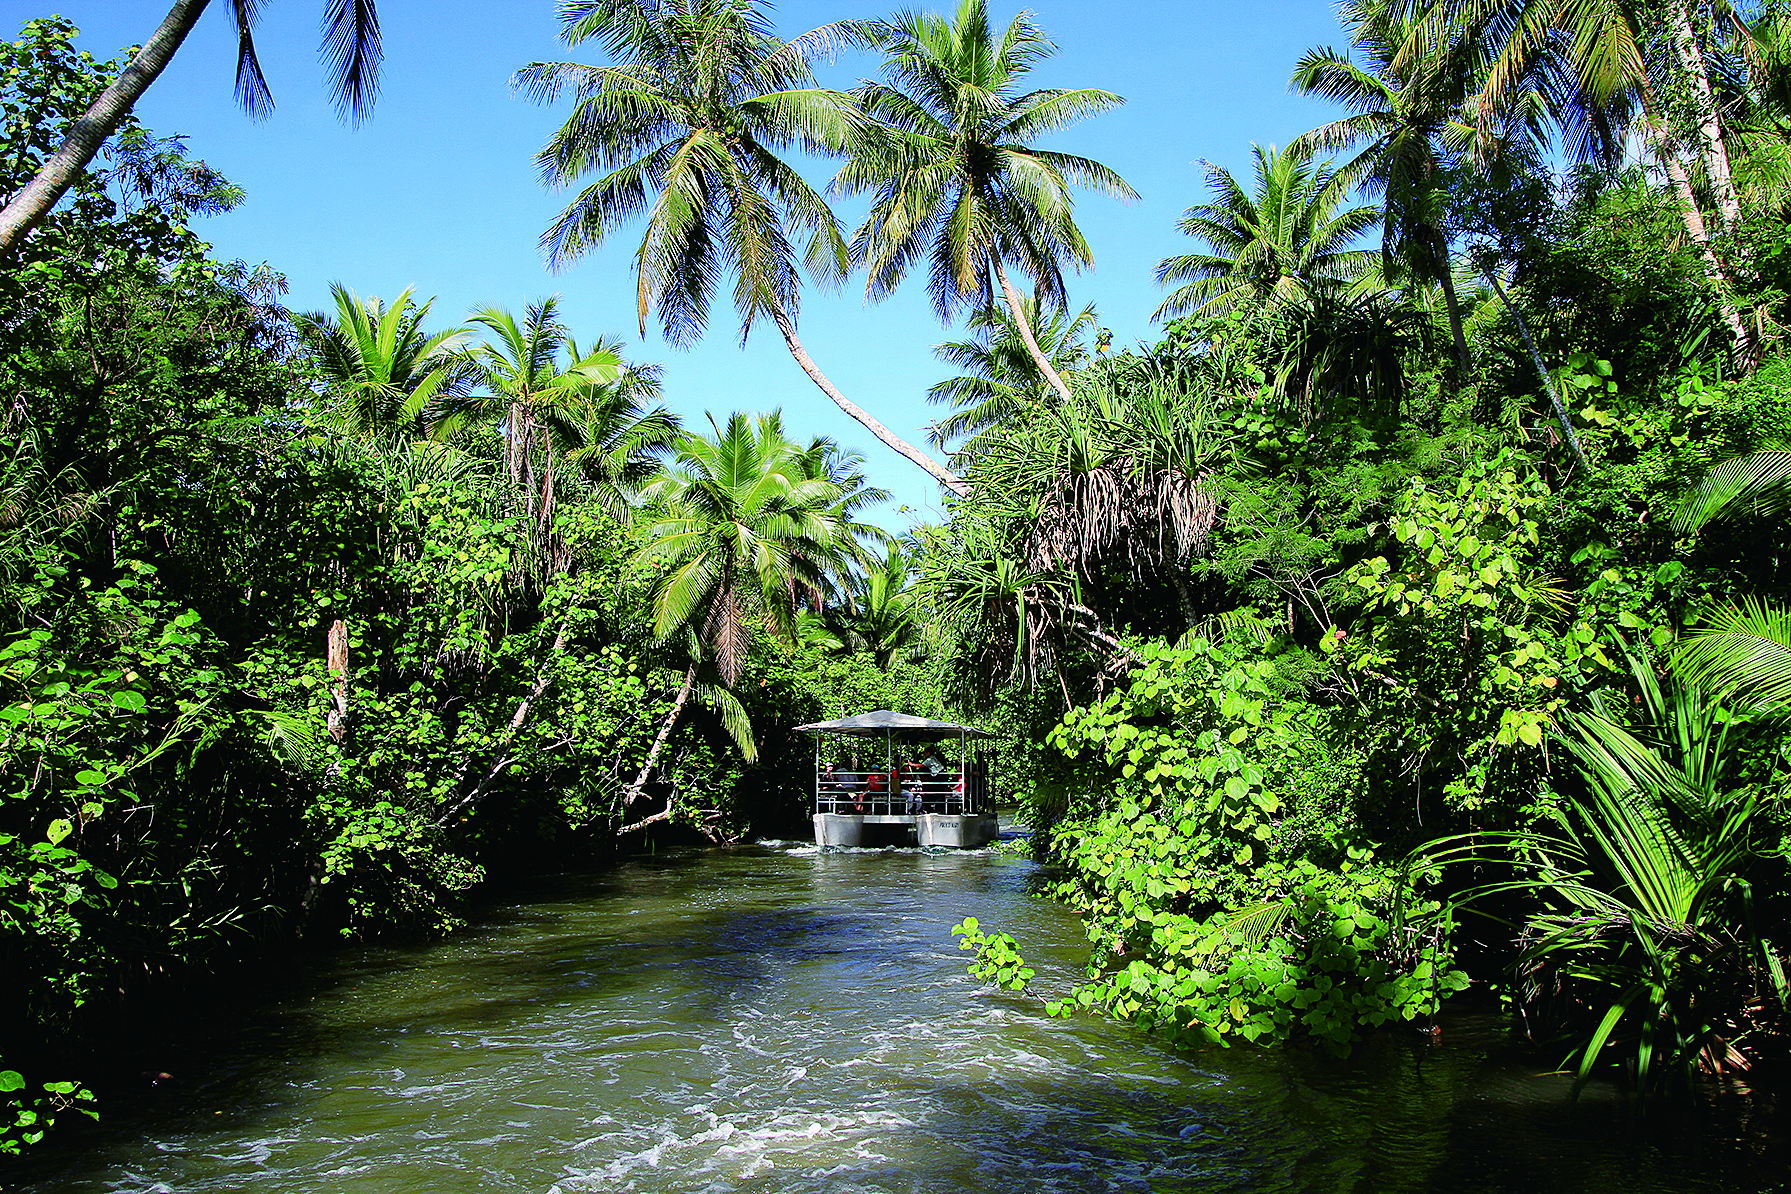 Afternoon Tours Guam's Best Tour River Cruise